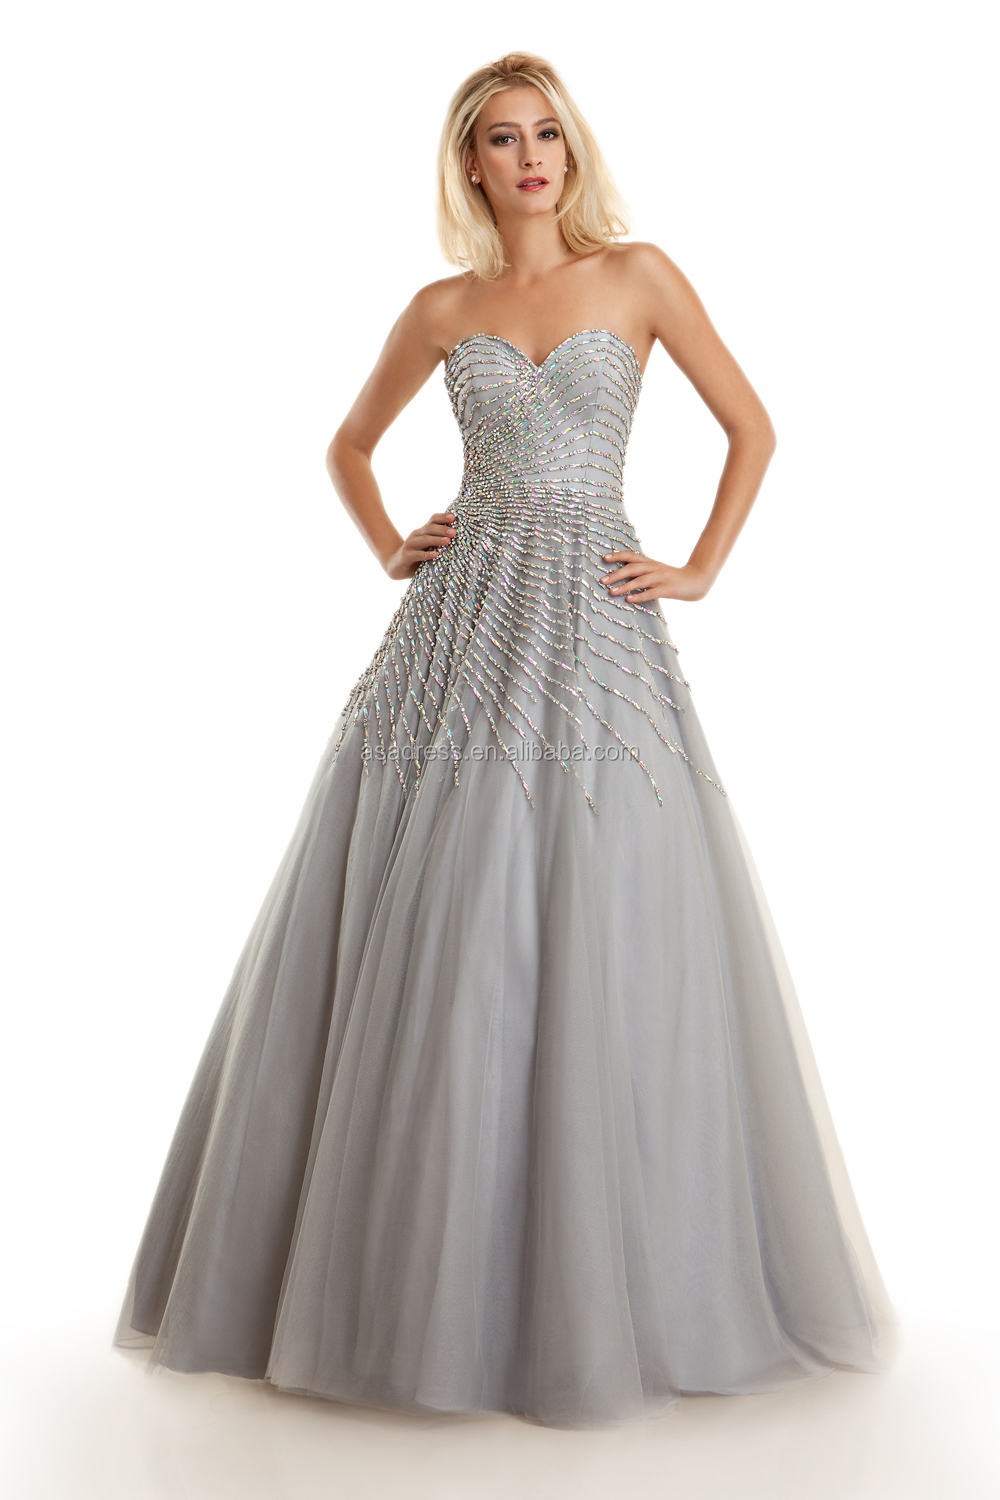 Xpd13 Latest Design Gray Off Shoulder Evening Formal Gown With Color ...